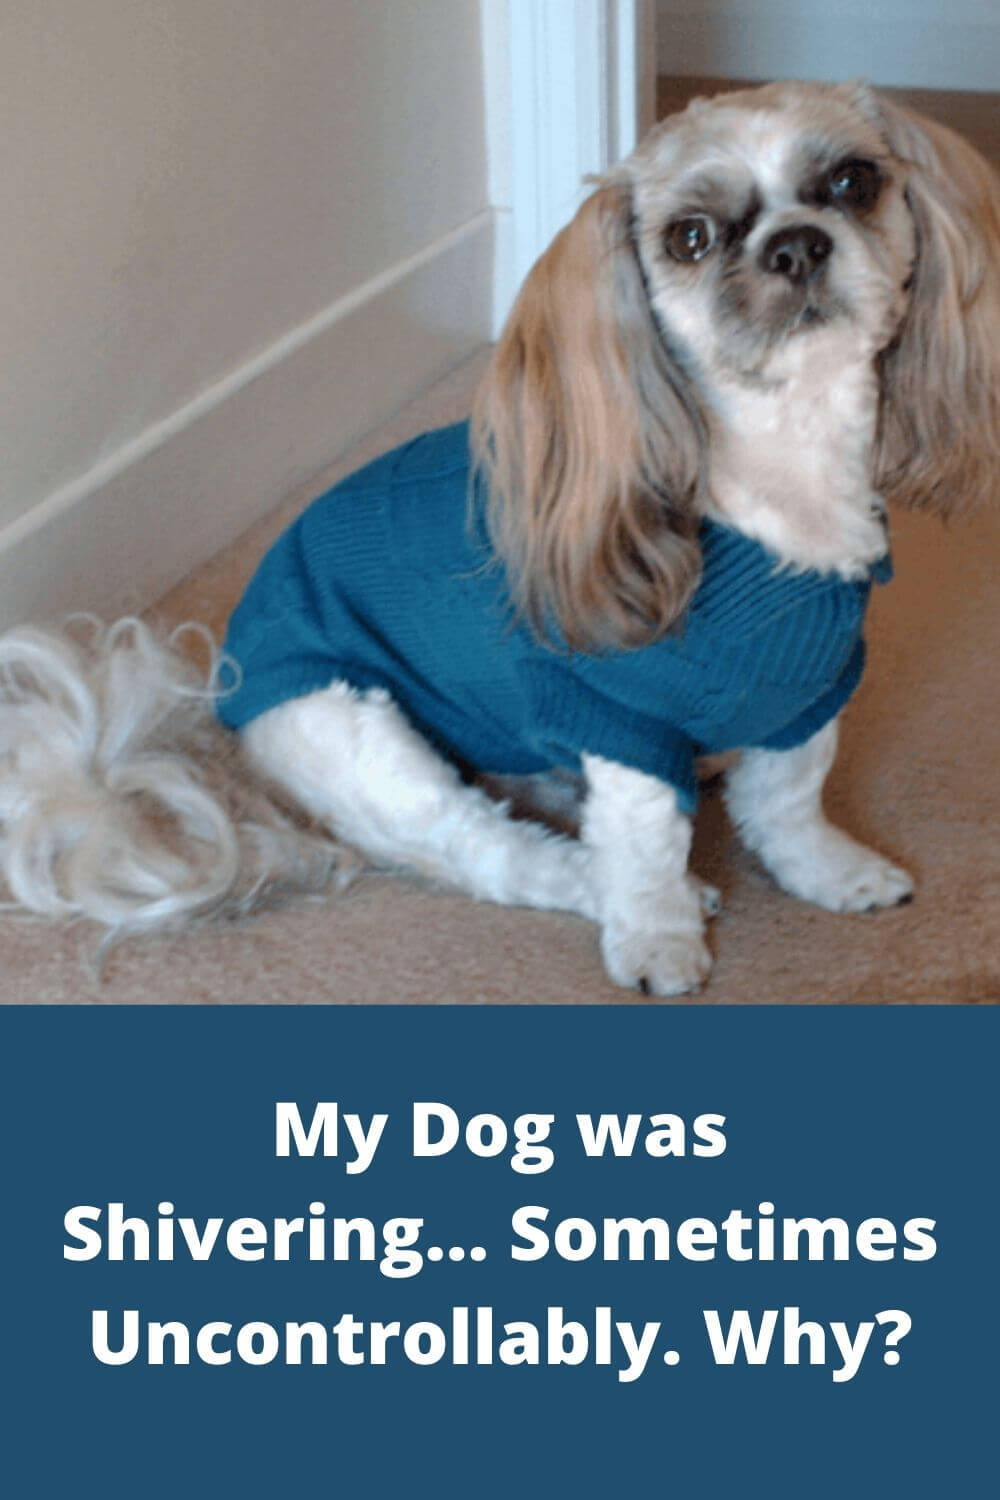 My dog was shivering- sometimes uncontrollably. Why?